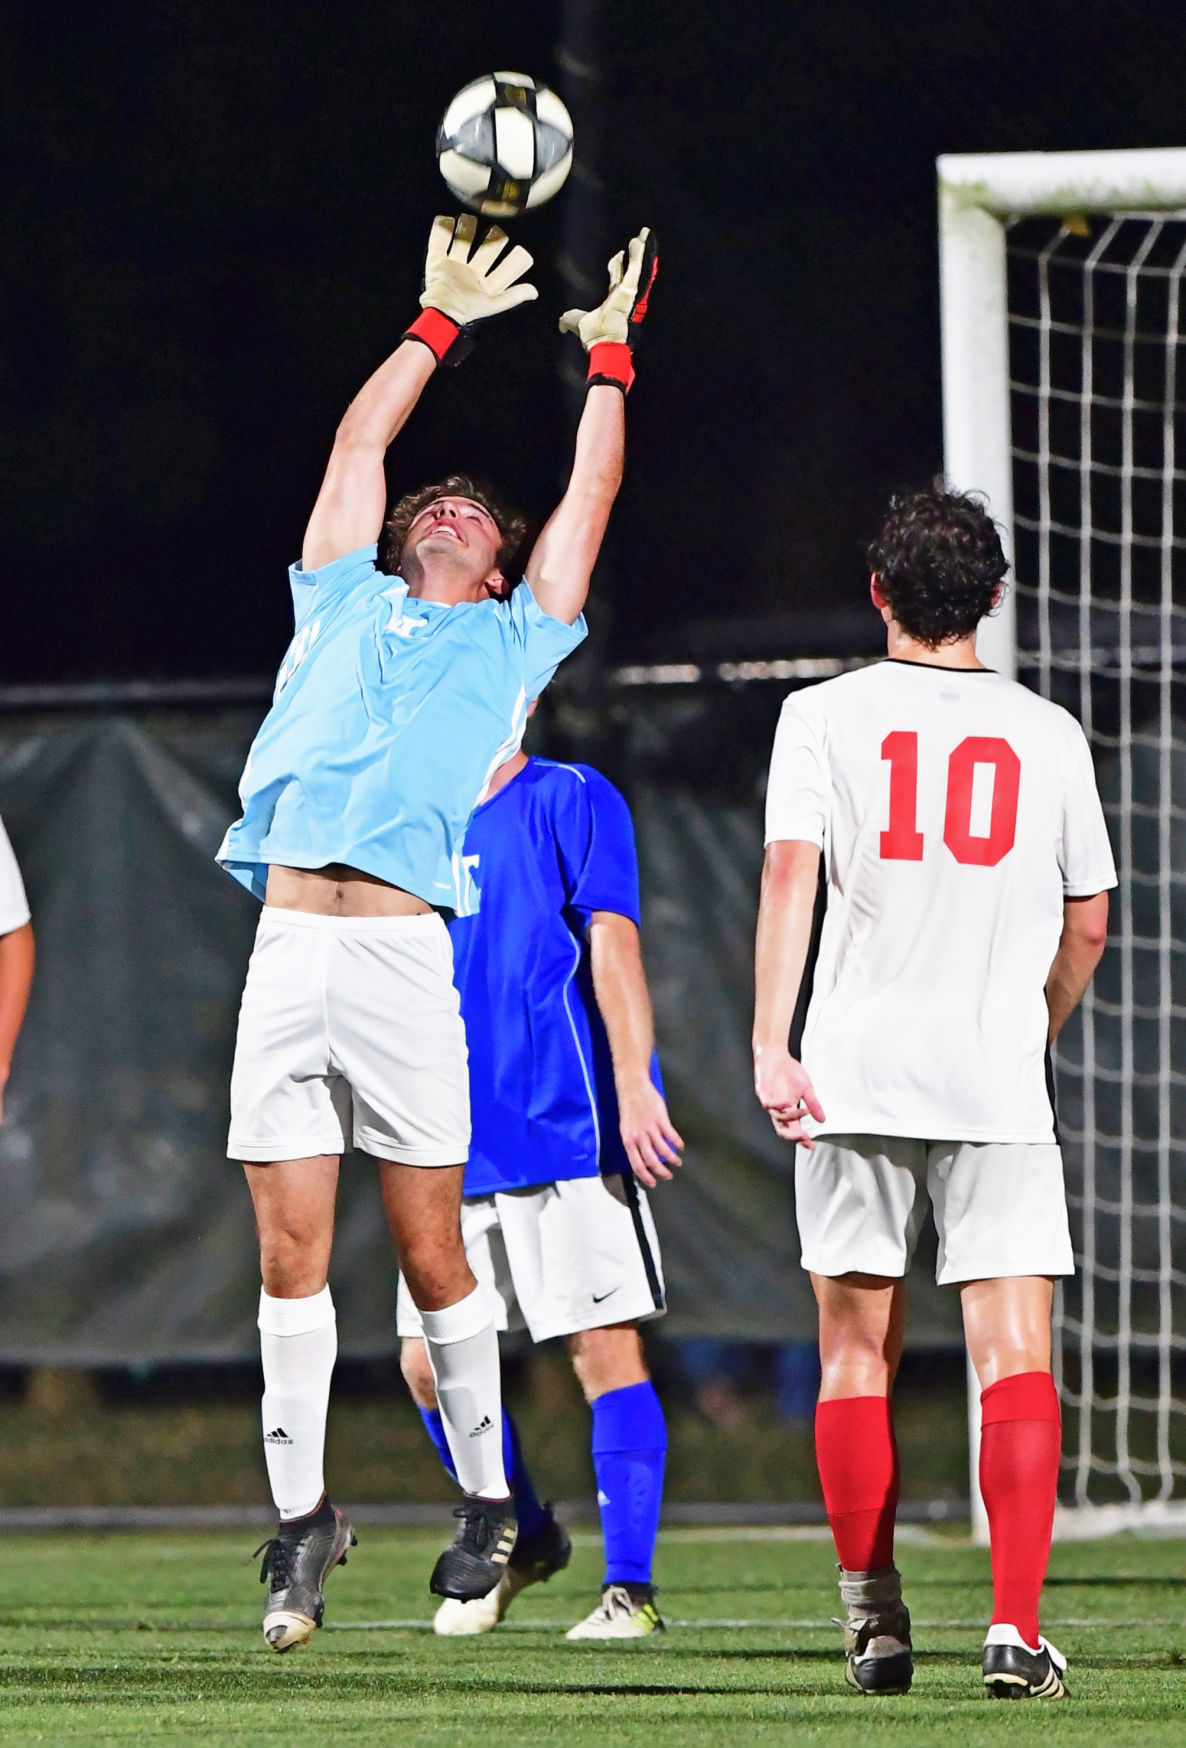 Andy Valles of Hunters Lane makes a save for team East. .jpeg